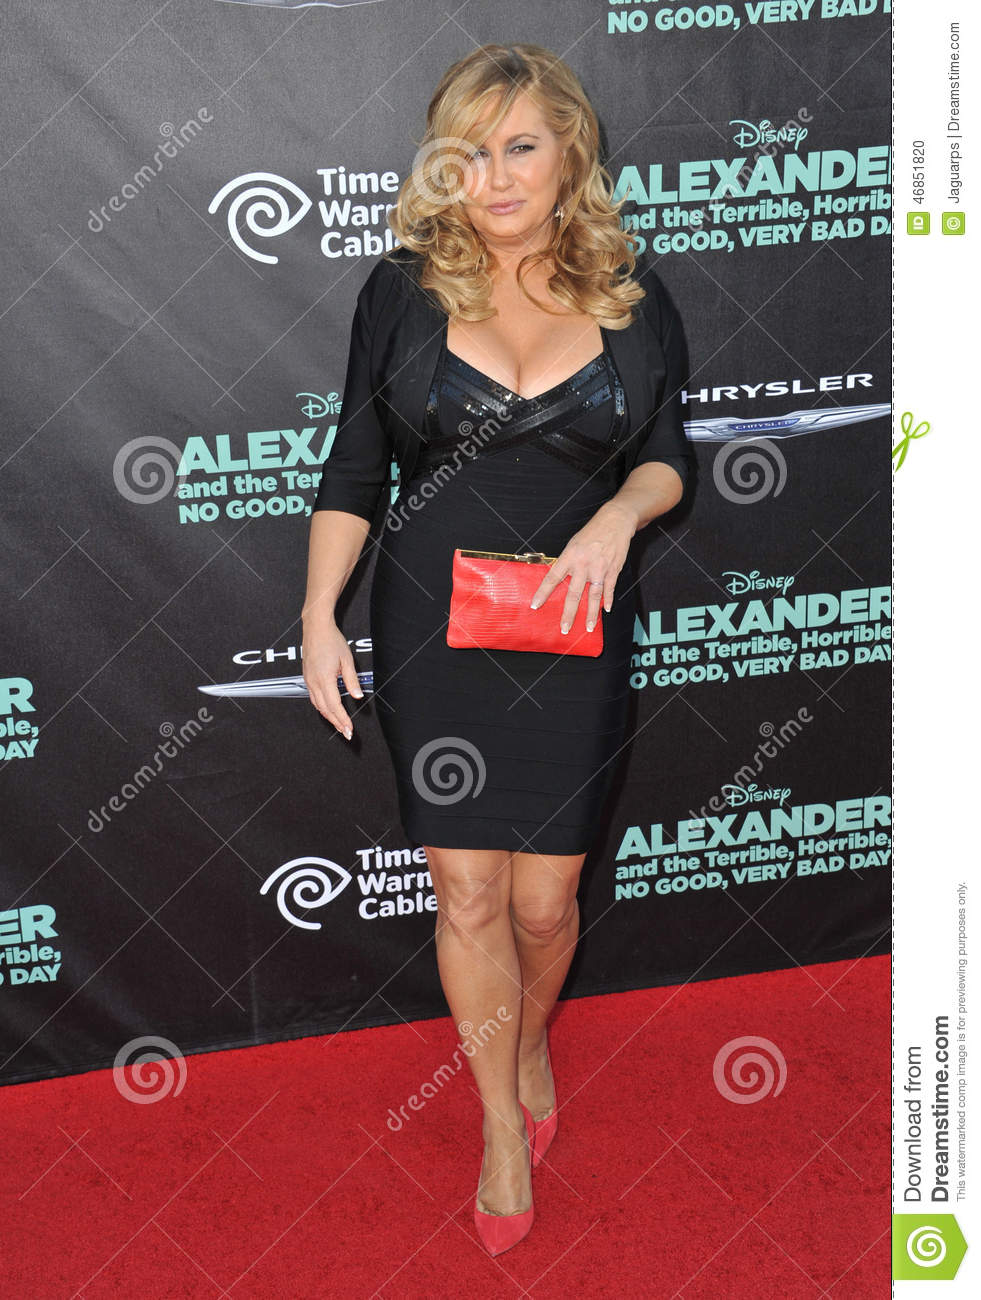 jennifer coolidge friendsjennifer coolidge 1999, jennifer coolidge friends, jennifer coolidge bio, jennifer coolidge quotes, jennifer coolidge biography, jennifer coolidge insta, jennifer coolidge instagram, jennifer coolidge husband, jennifer coolidge wiki, jennifer coolidge stand up, jennifer coolidge films, jennifer coolidge interview, jennifer coolidge partner